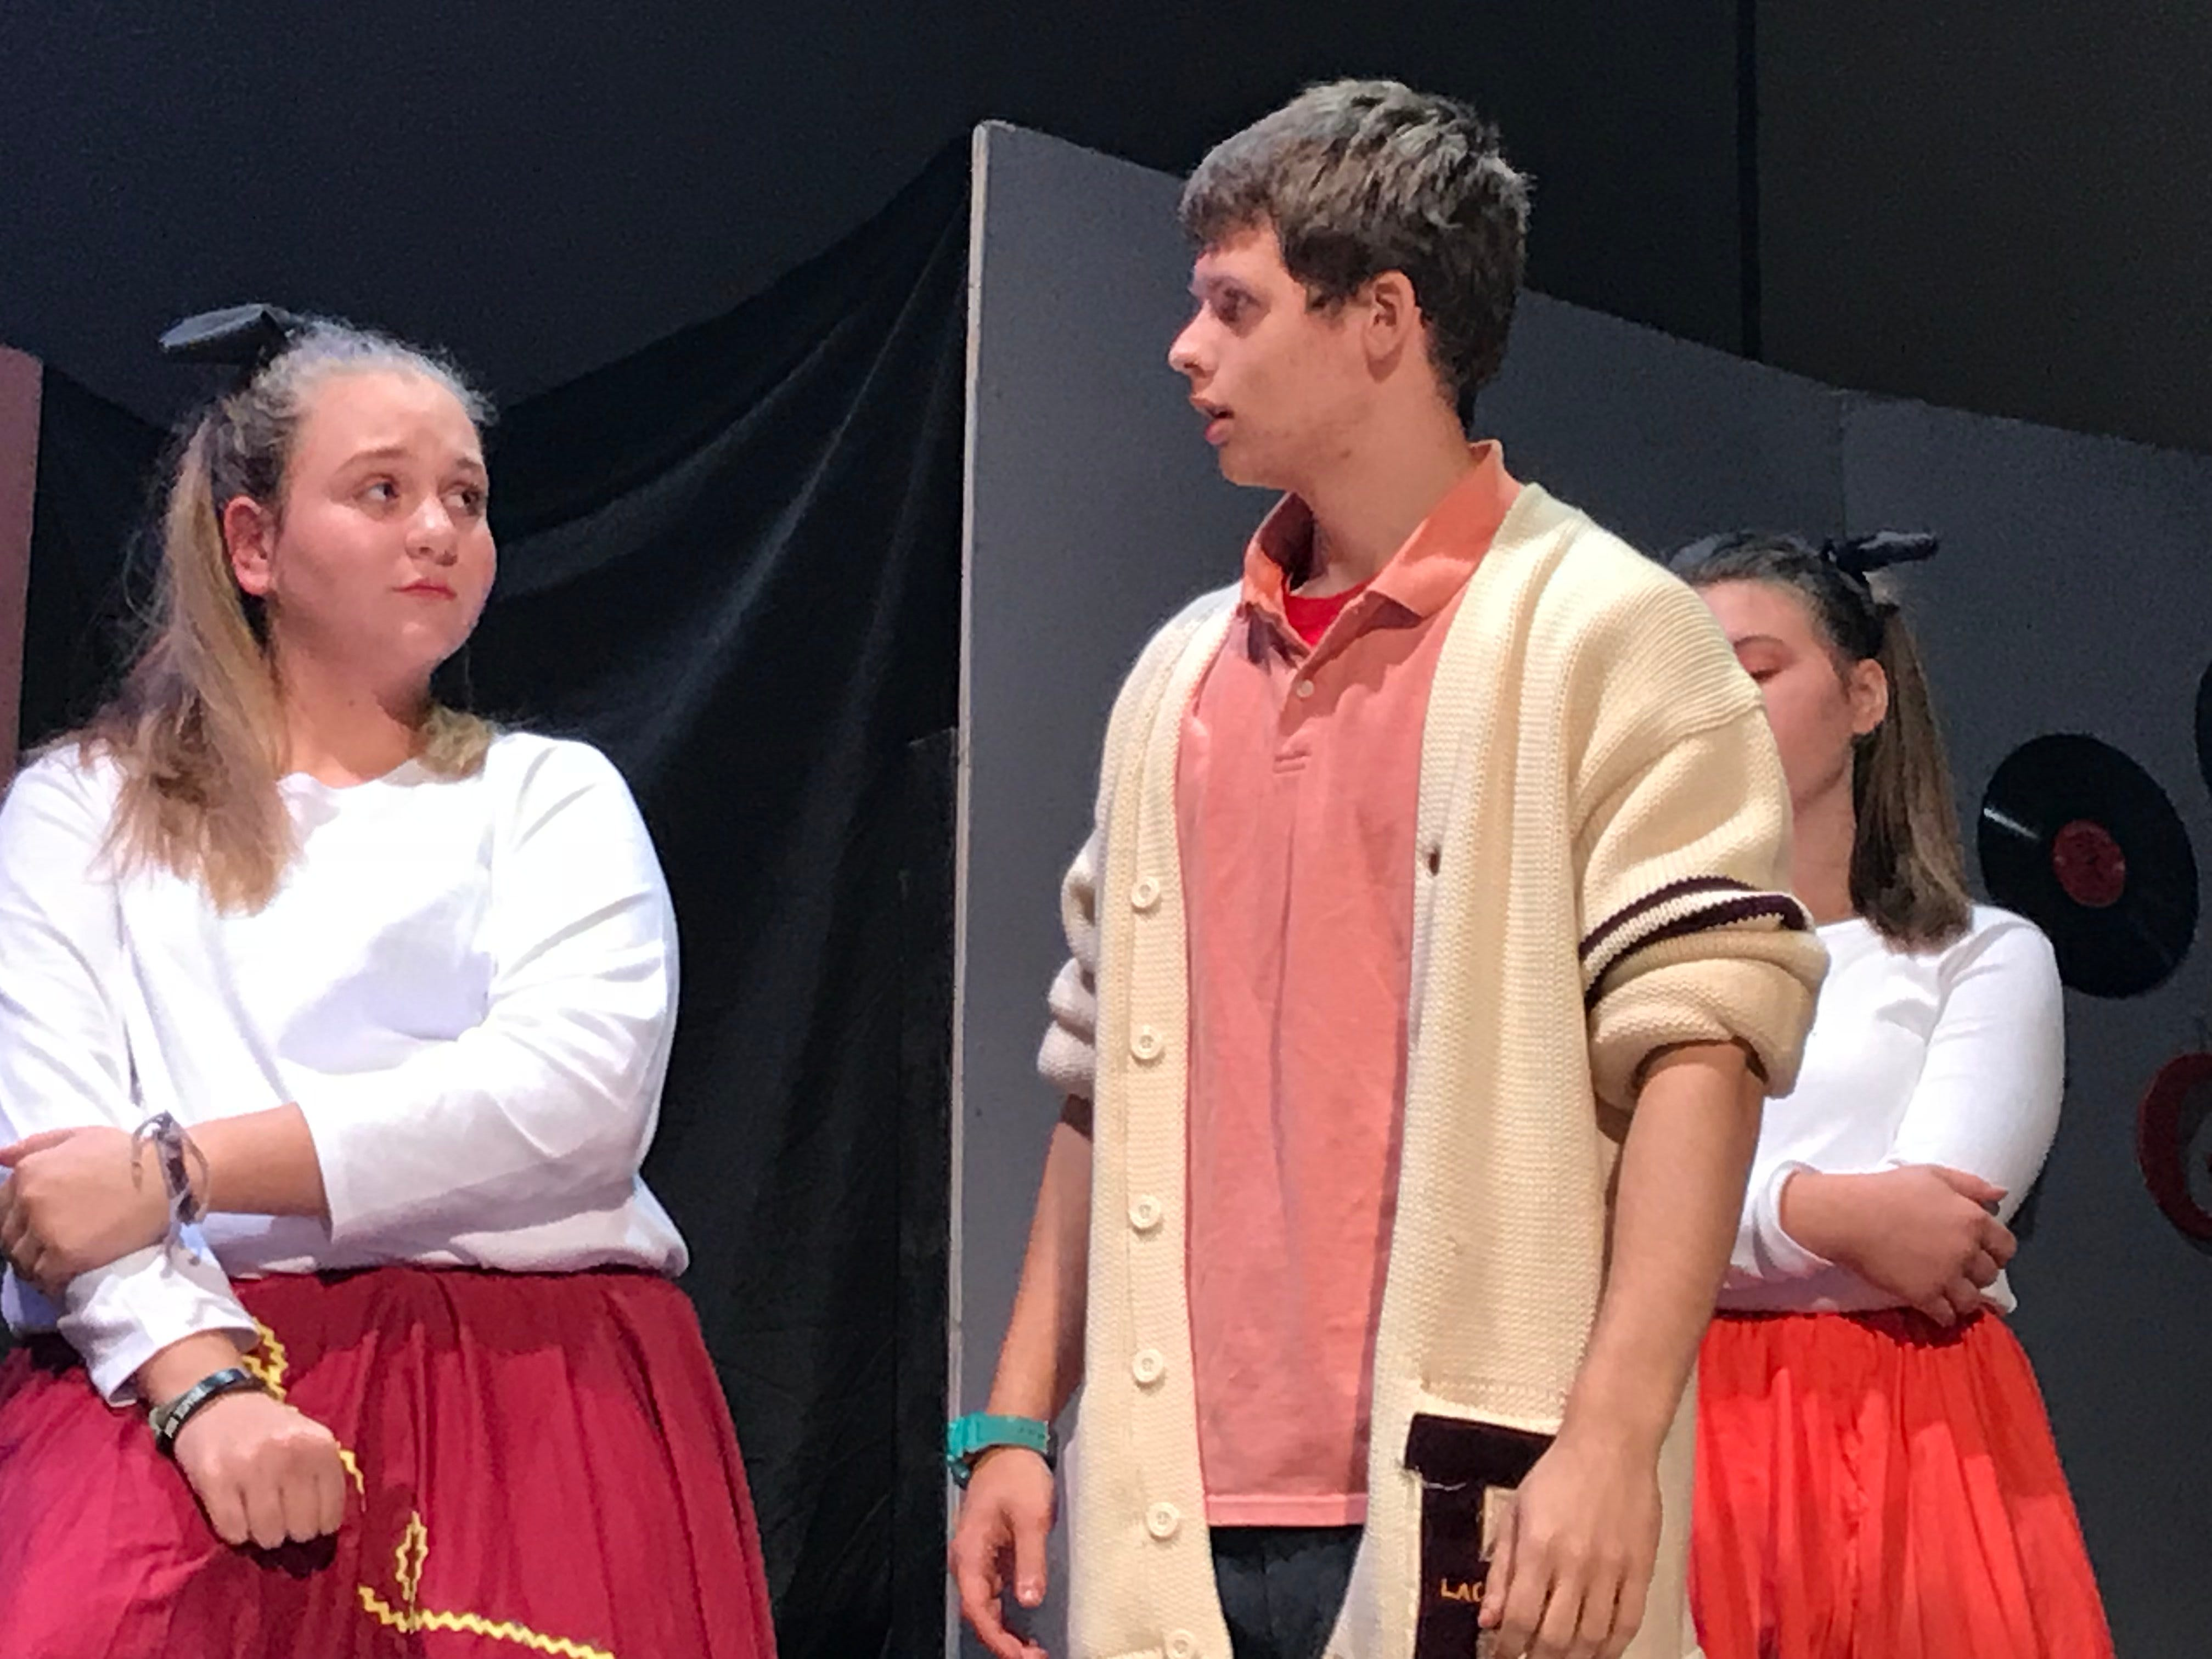 """Hannah Kennedy and Thomas McVey act out a scene as """"Bobby Pin"""" and """"Jim Shorts,"""" respectively, in a dress rehearsal for """"Murder in the Malt Shop"""" on Friday afternoon.  The public is invited to CVCS's performances of """"Murder at the Malt Shop"""" at 7 p.m. on Nov. 16 and 17 at Open Door Church, on the campus of CVCS at 600 Miller St., Chambersburg."""